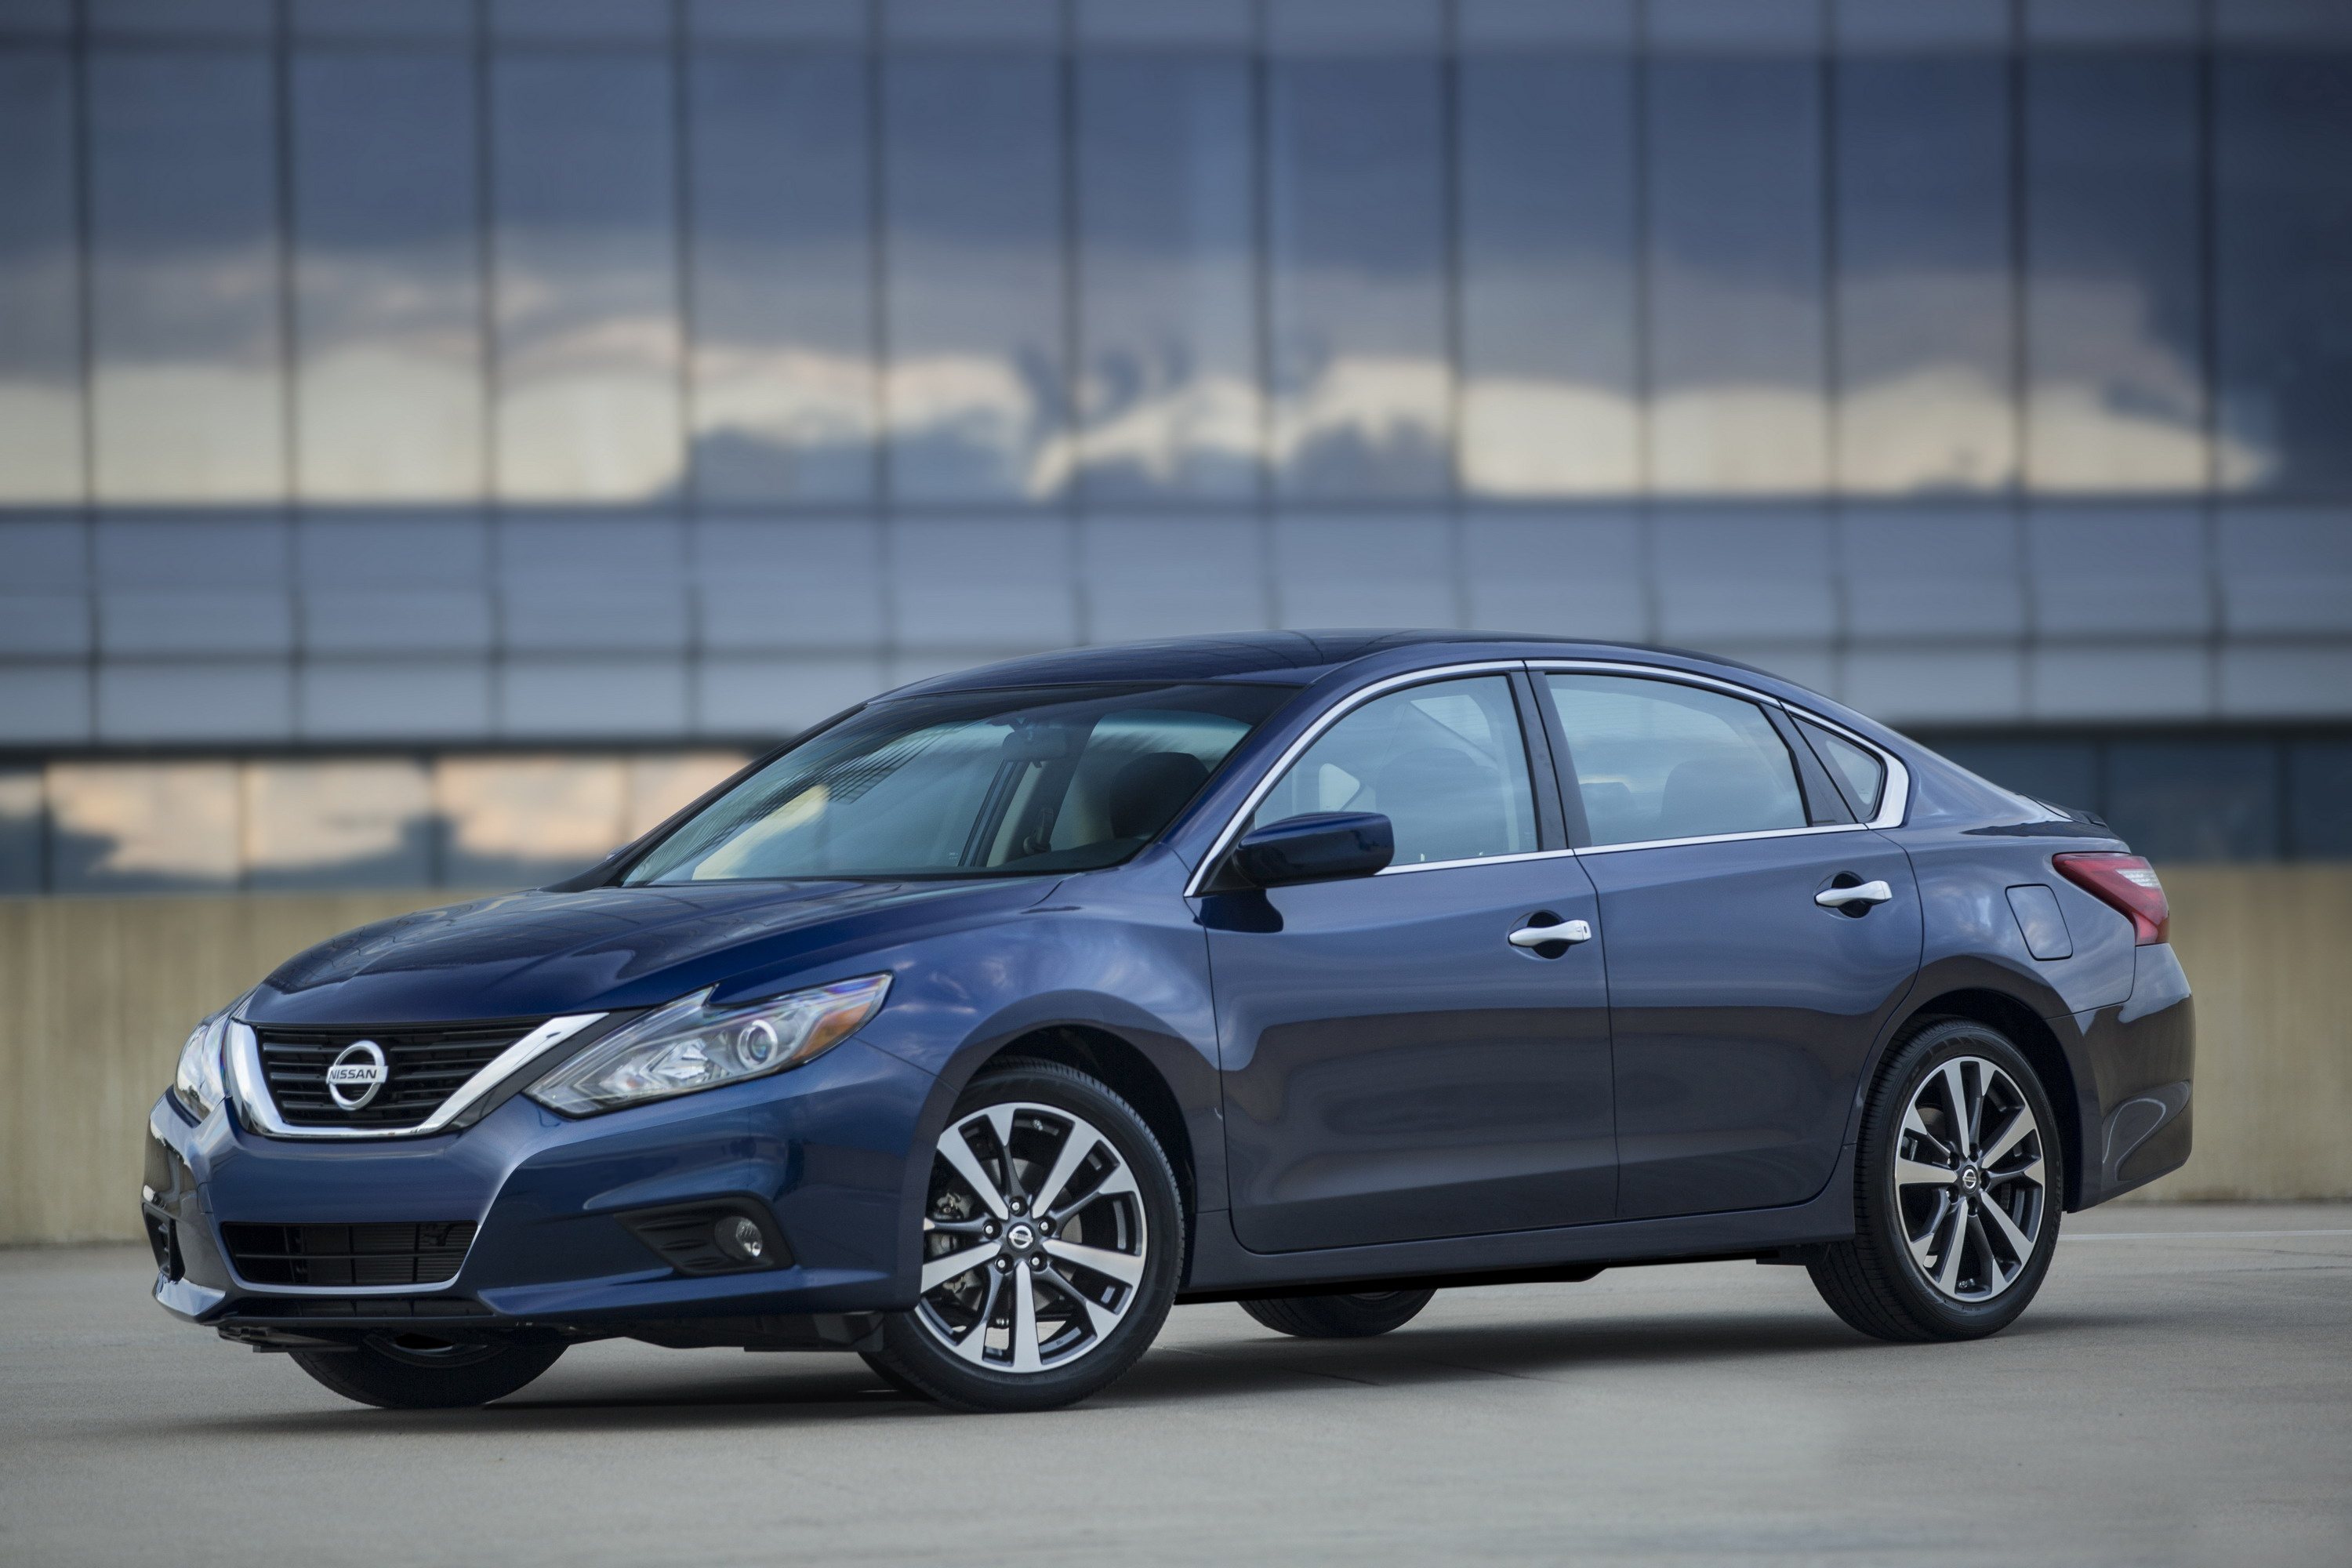 nissan jpg bhp team altima forum reports img ownership my s test initial drives